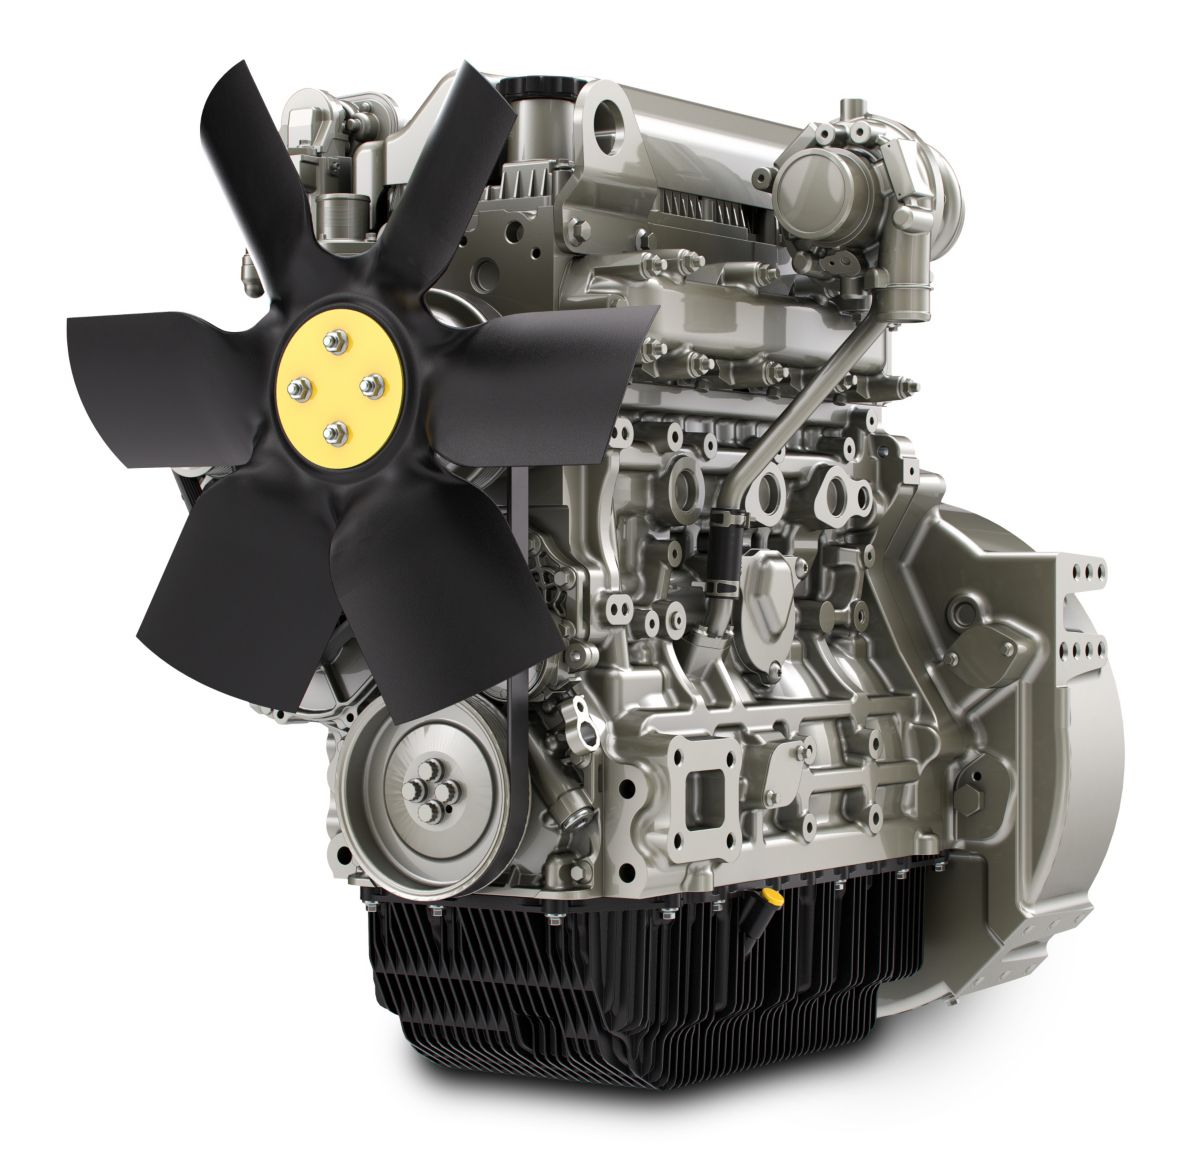 Perkins® Syncro 2.8 and 3.6 litre engines